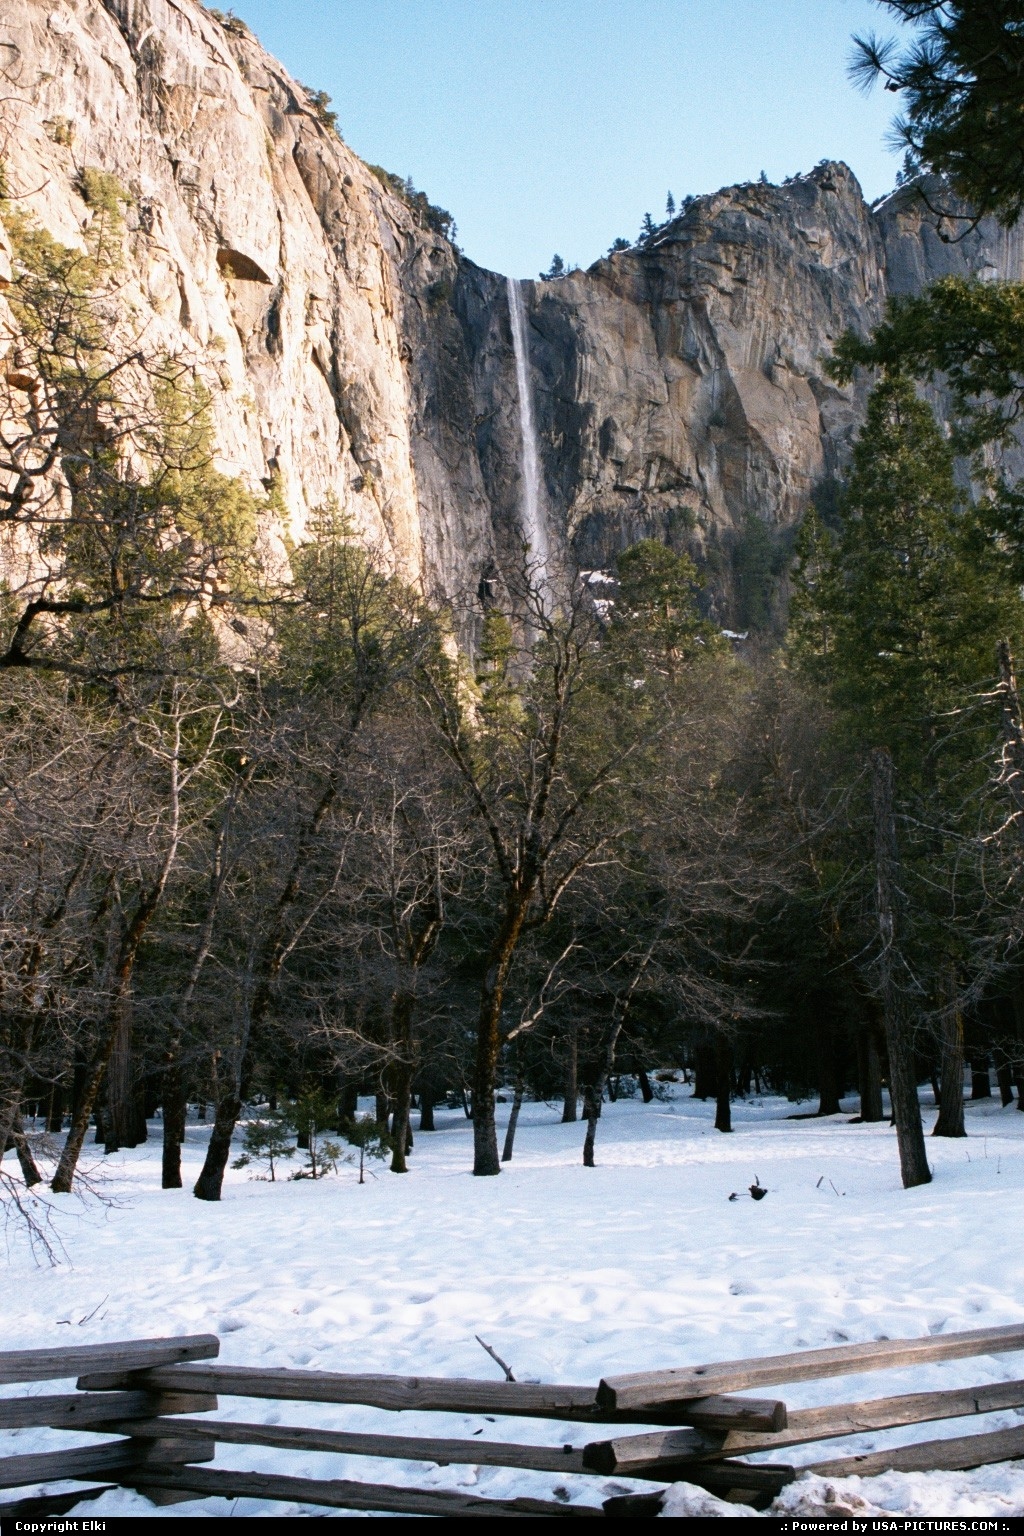 Picture by elki:CaliforniaYosemitewaterfall, snow, tree